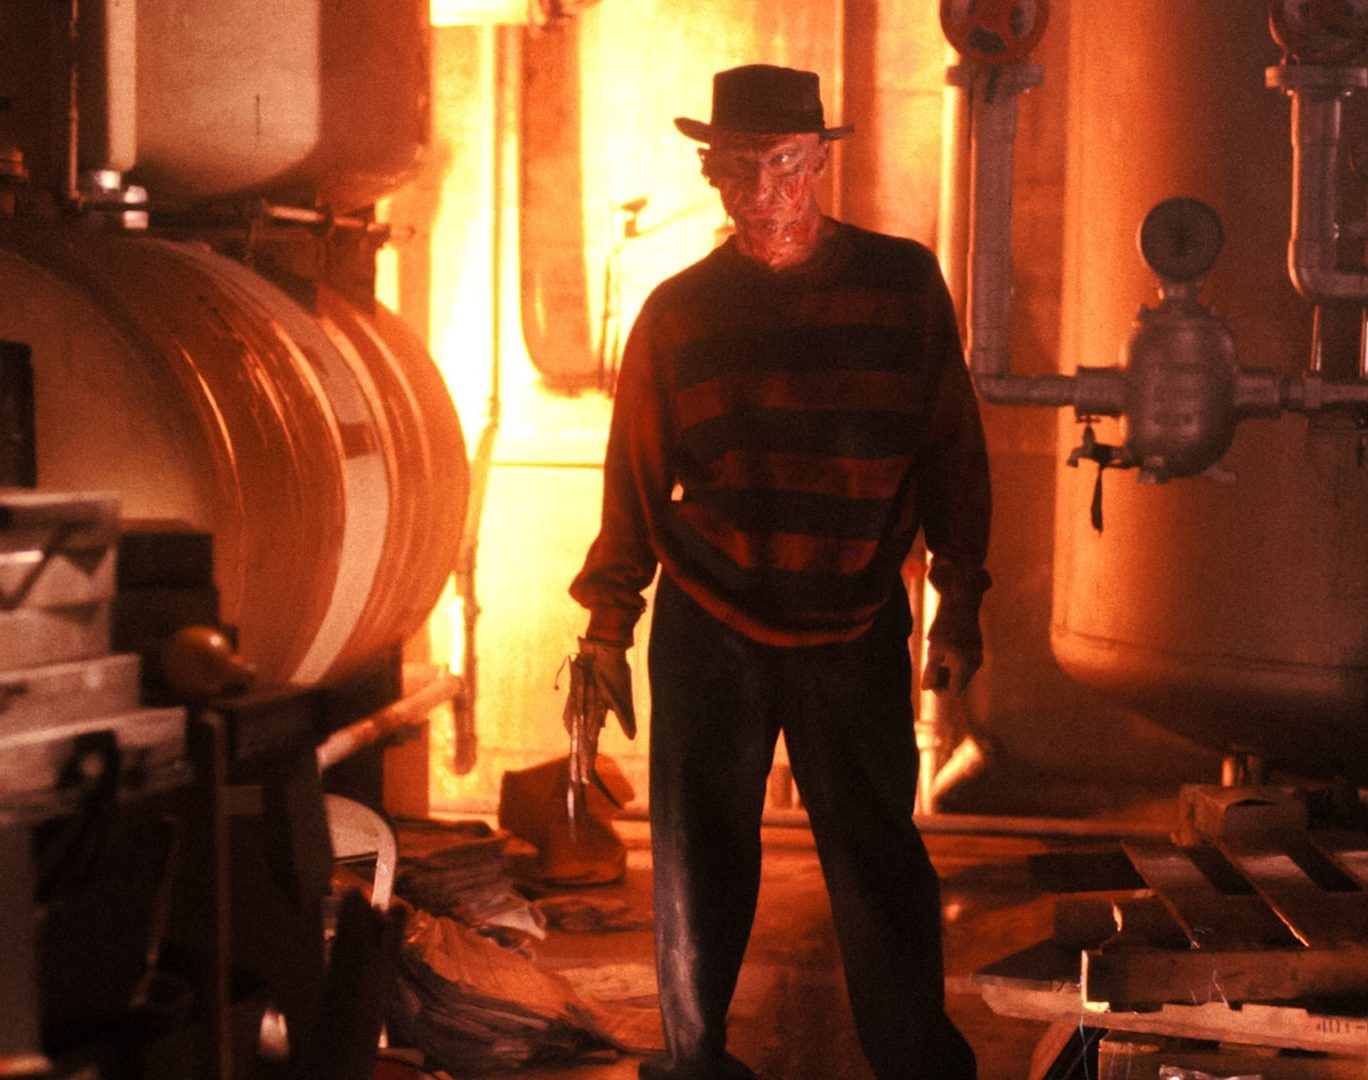 3OMlPp0kVOI2qG4ozy4Coq5Bf1E e1622812985133 A Nightmare On Elm Street Is Based On A True Story, And More You Never Knew About The Film